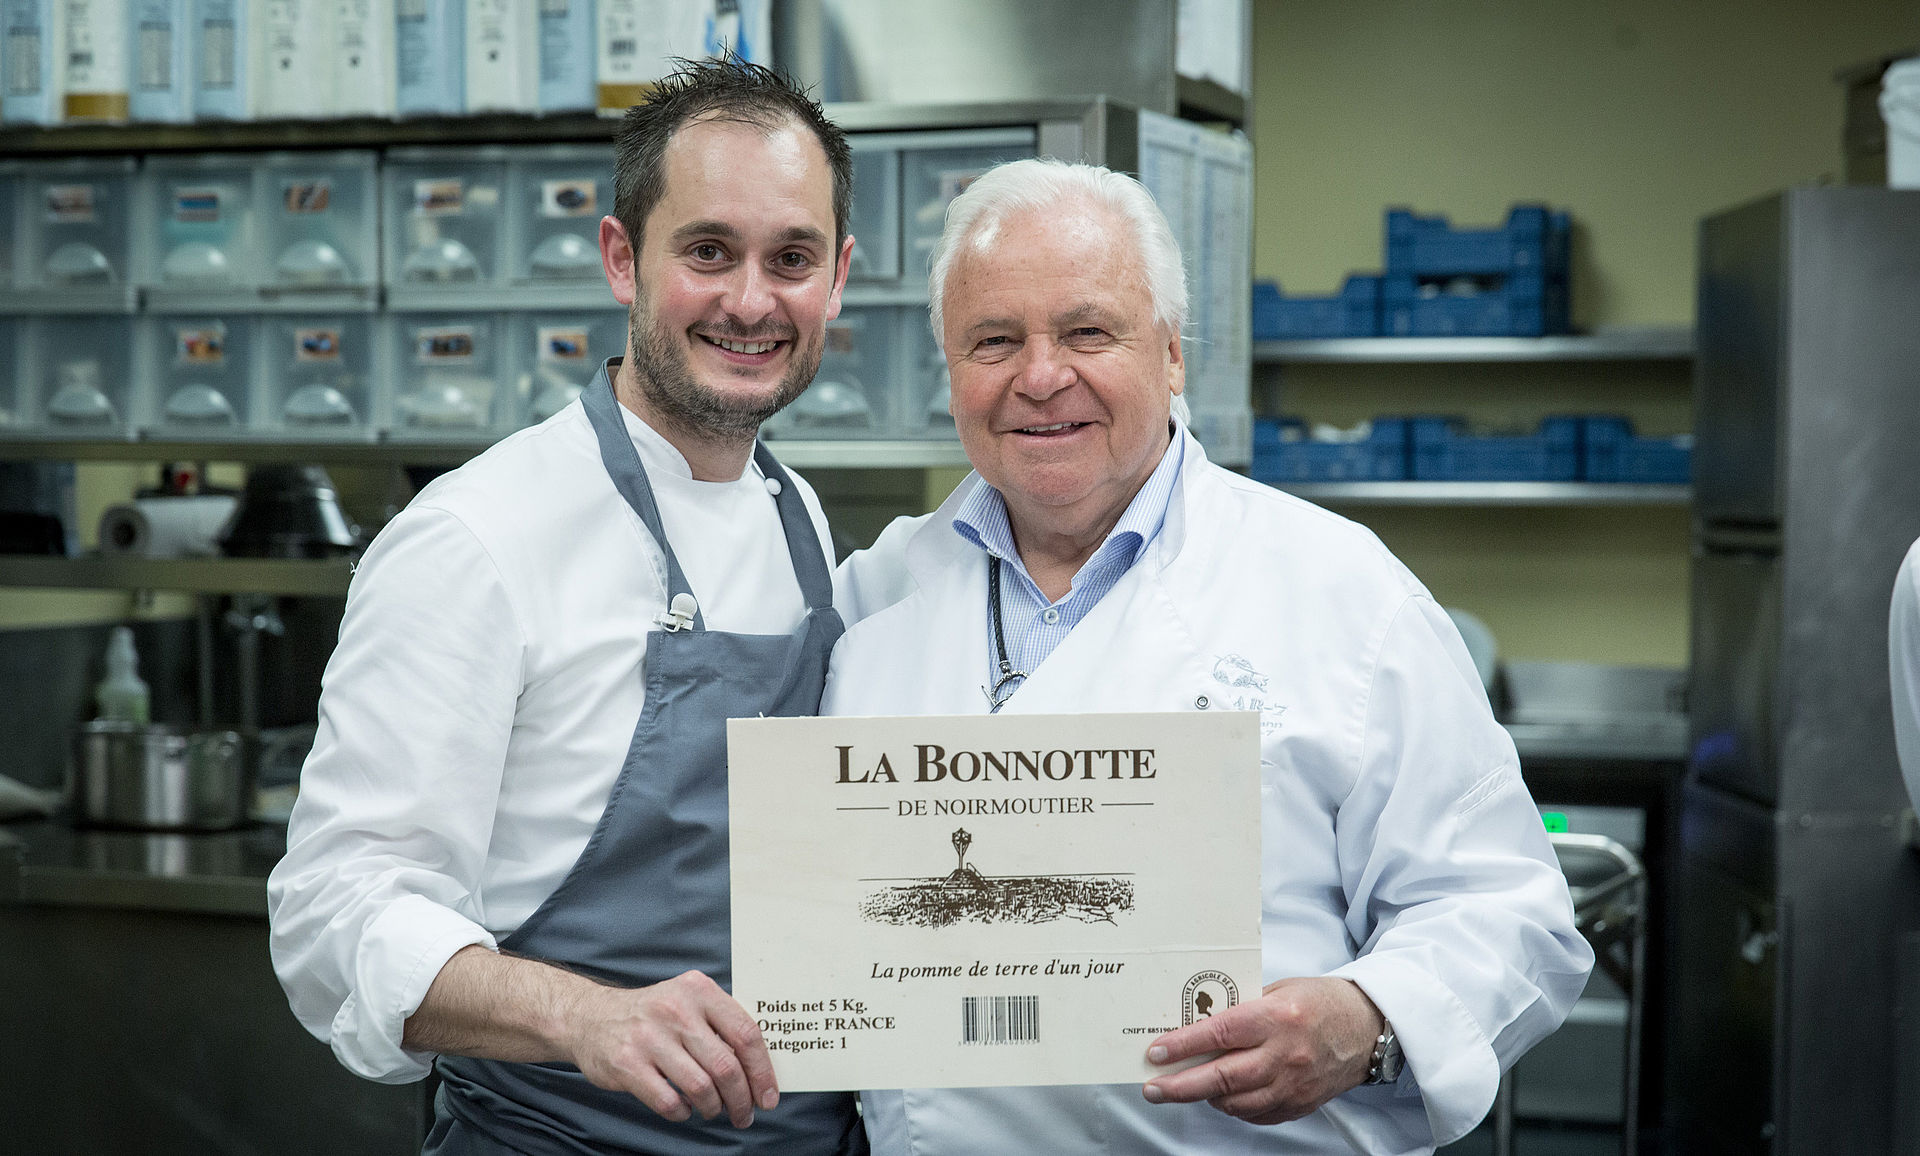 Couillon Noirmoutier An Island Chef Making Big Waves